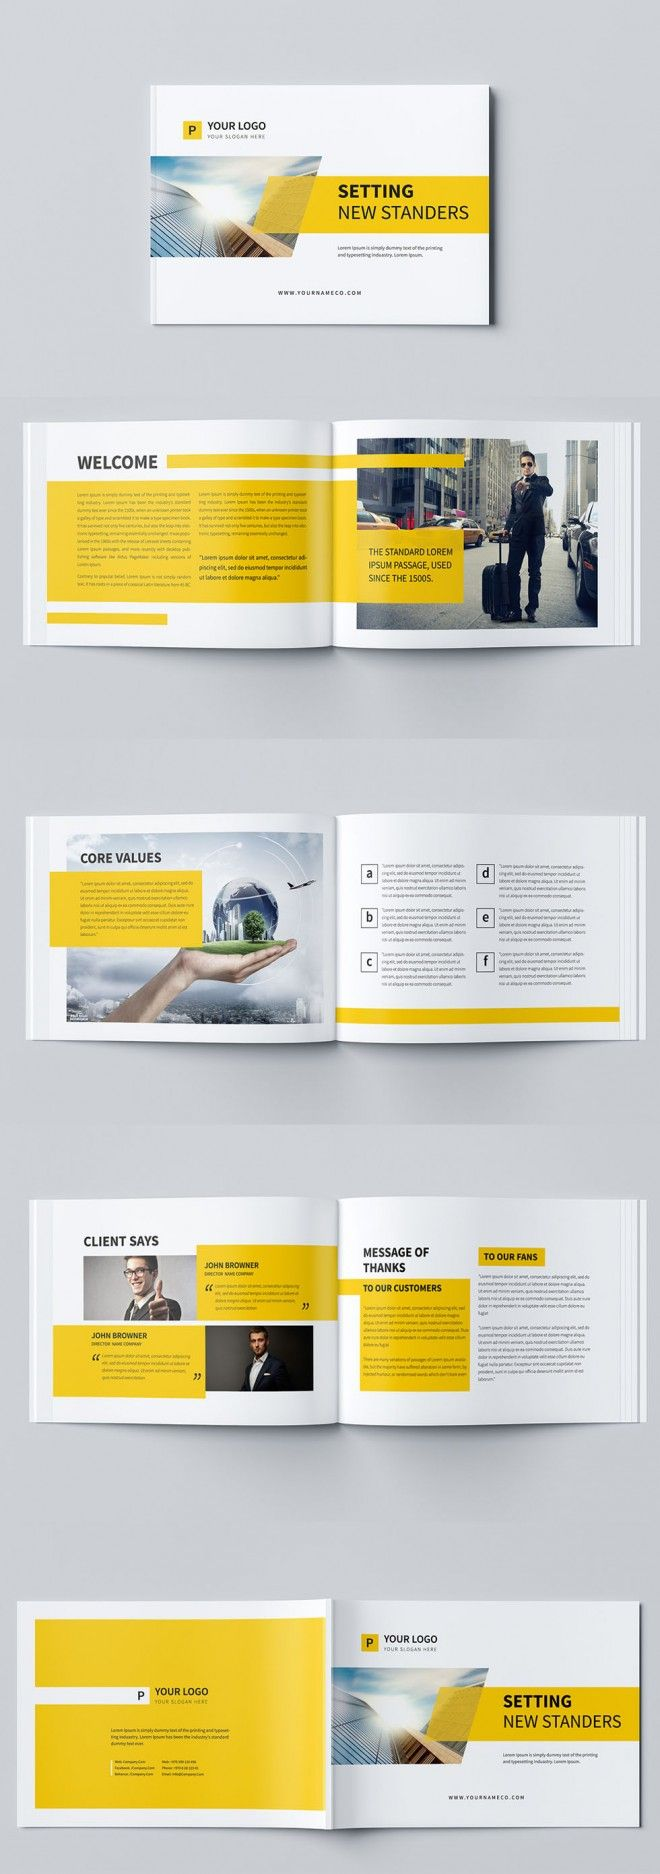 brochure design layout ideas - best 25 brochure design ideas on pinterest brochure